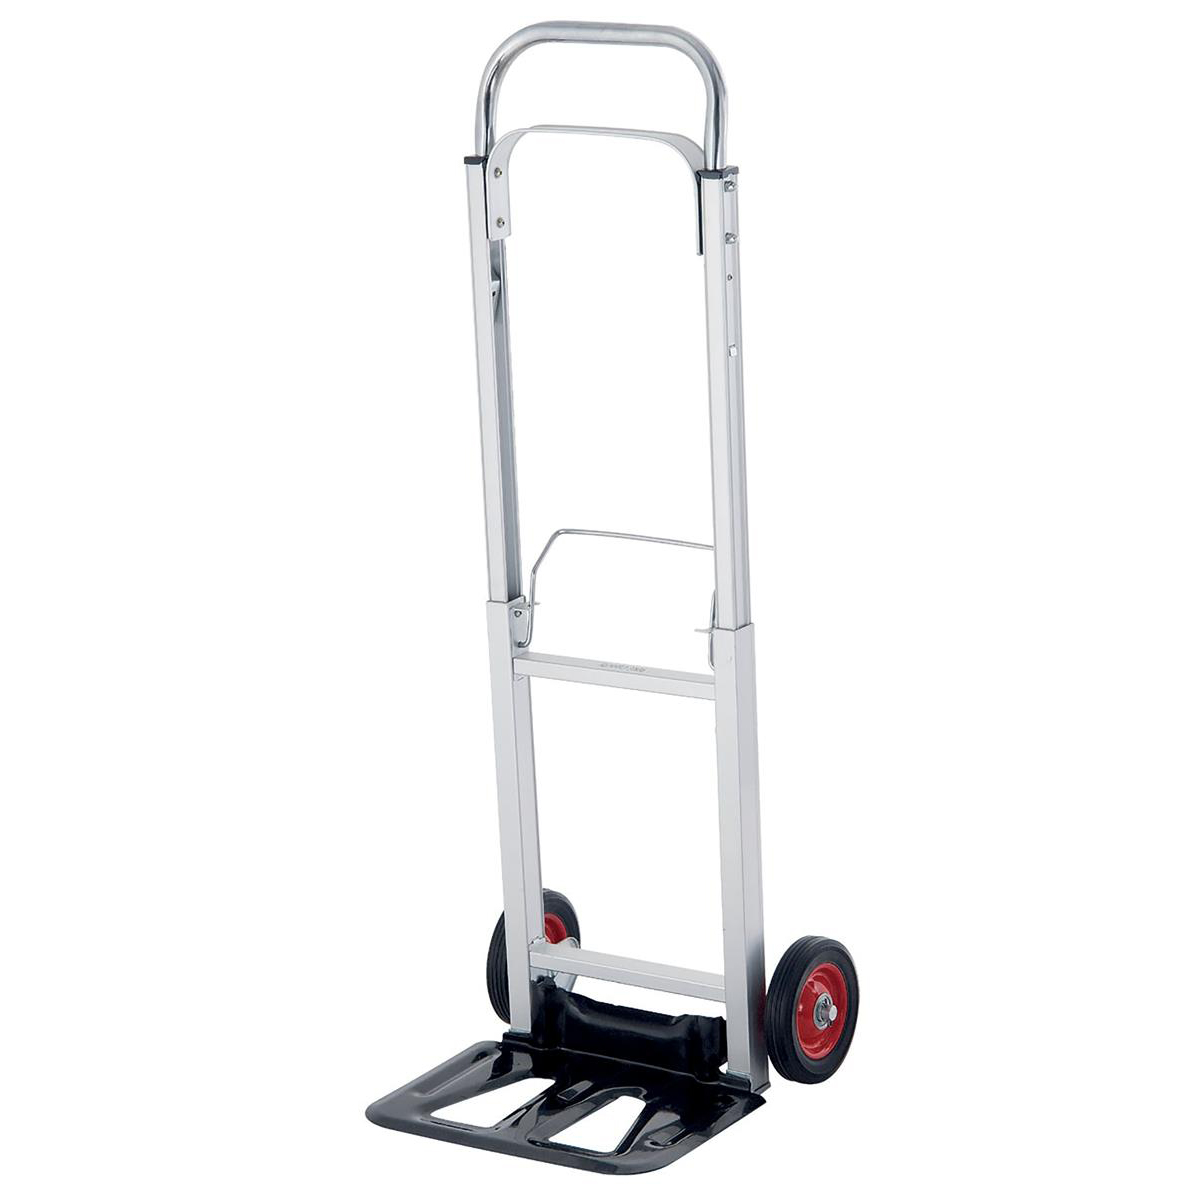 Hand Trolley Telescopic Handle Lightweight Capacity 90kg Foot Size W355xL235mm Blue